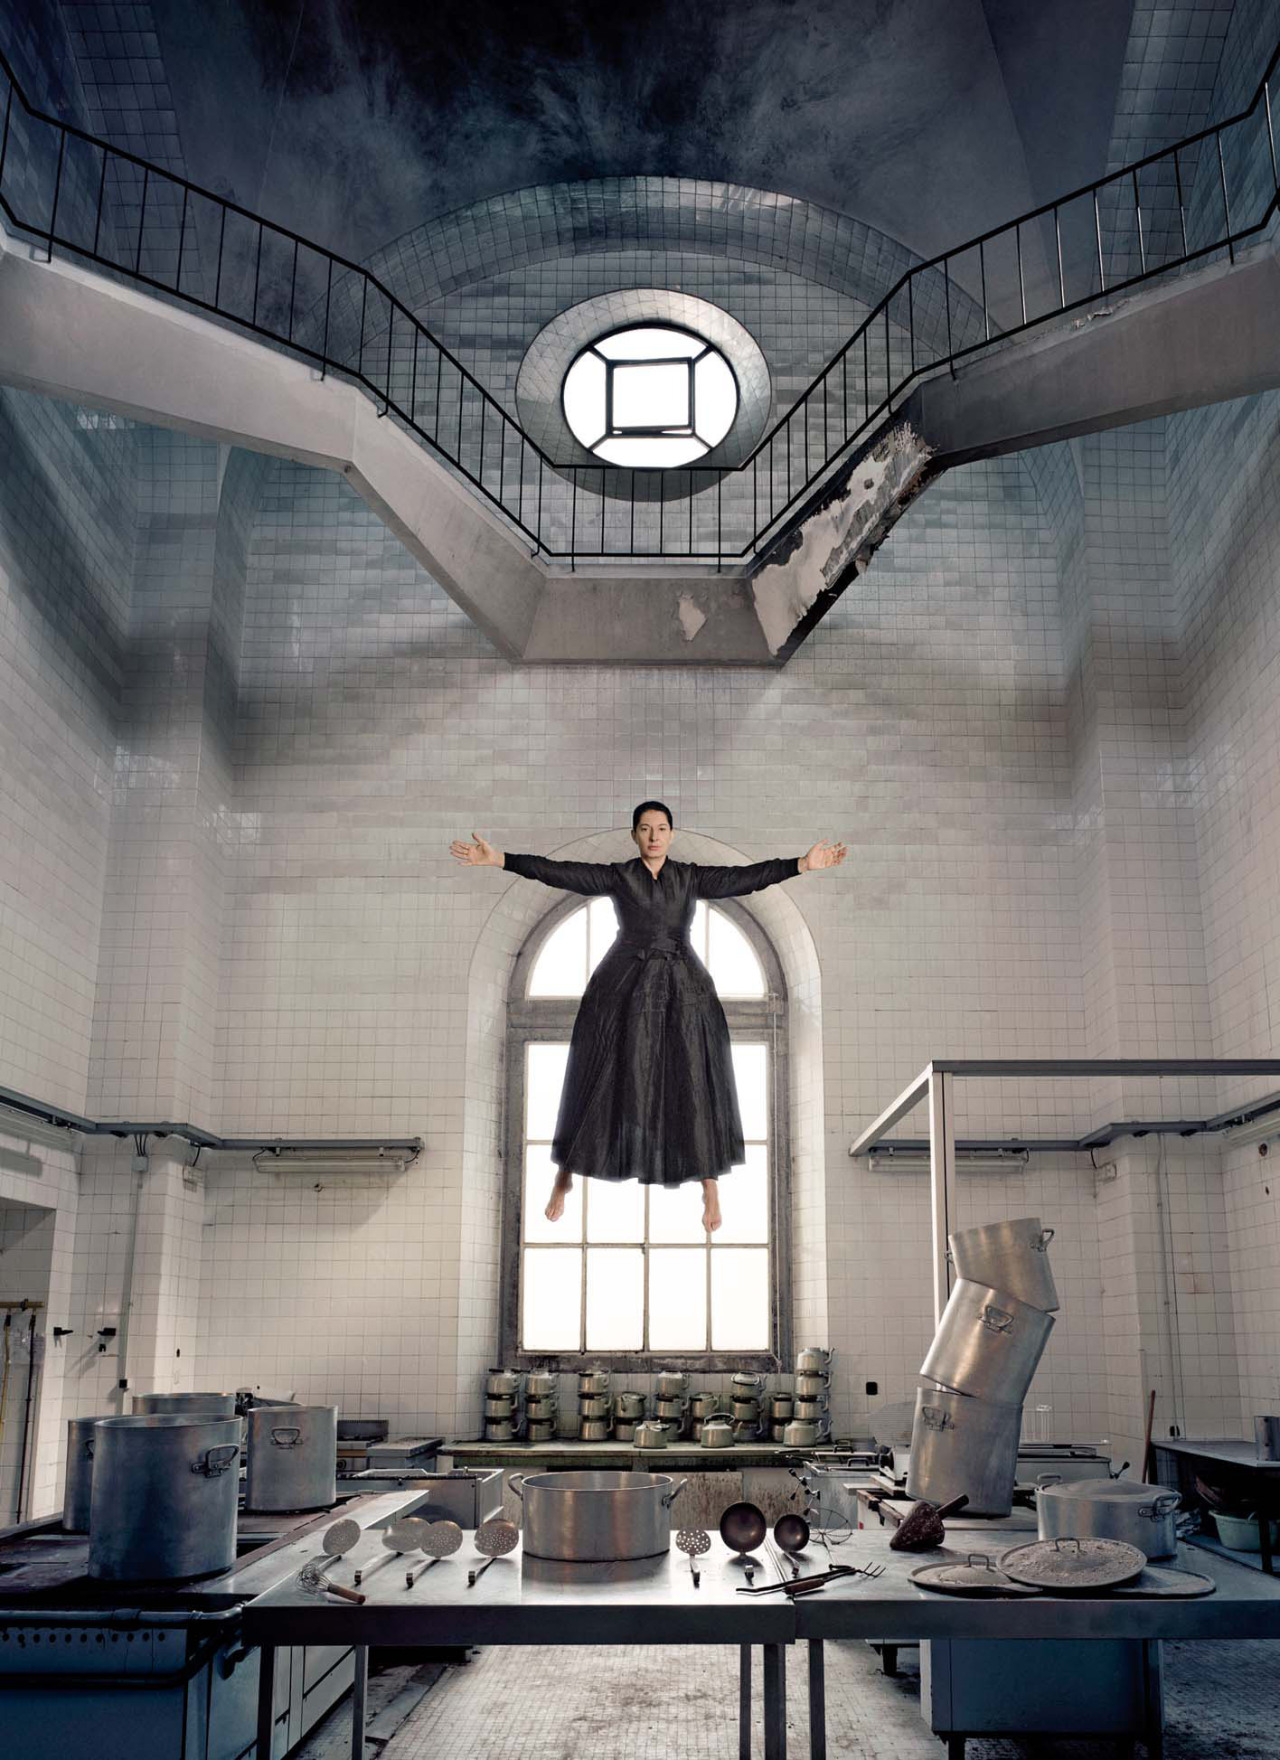 The Kitchen I—Homage to Saint Therese, 2009, pigment print by Marina Abramović Marina is bewitching.